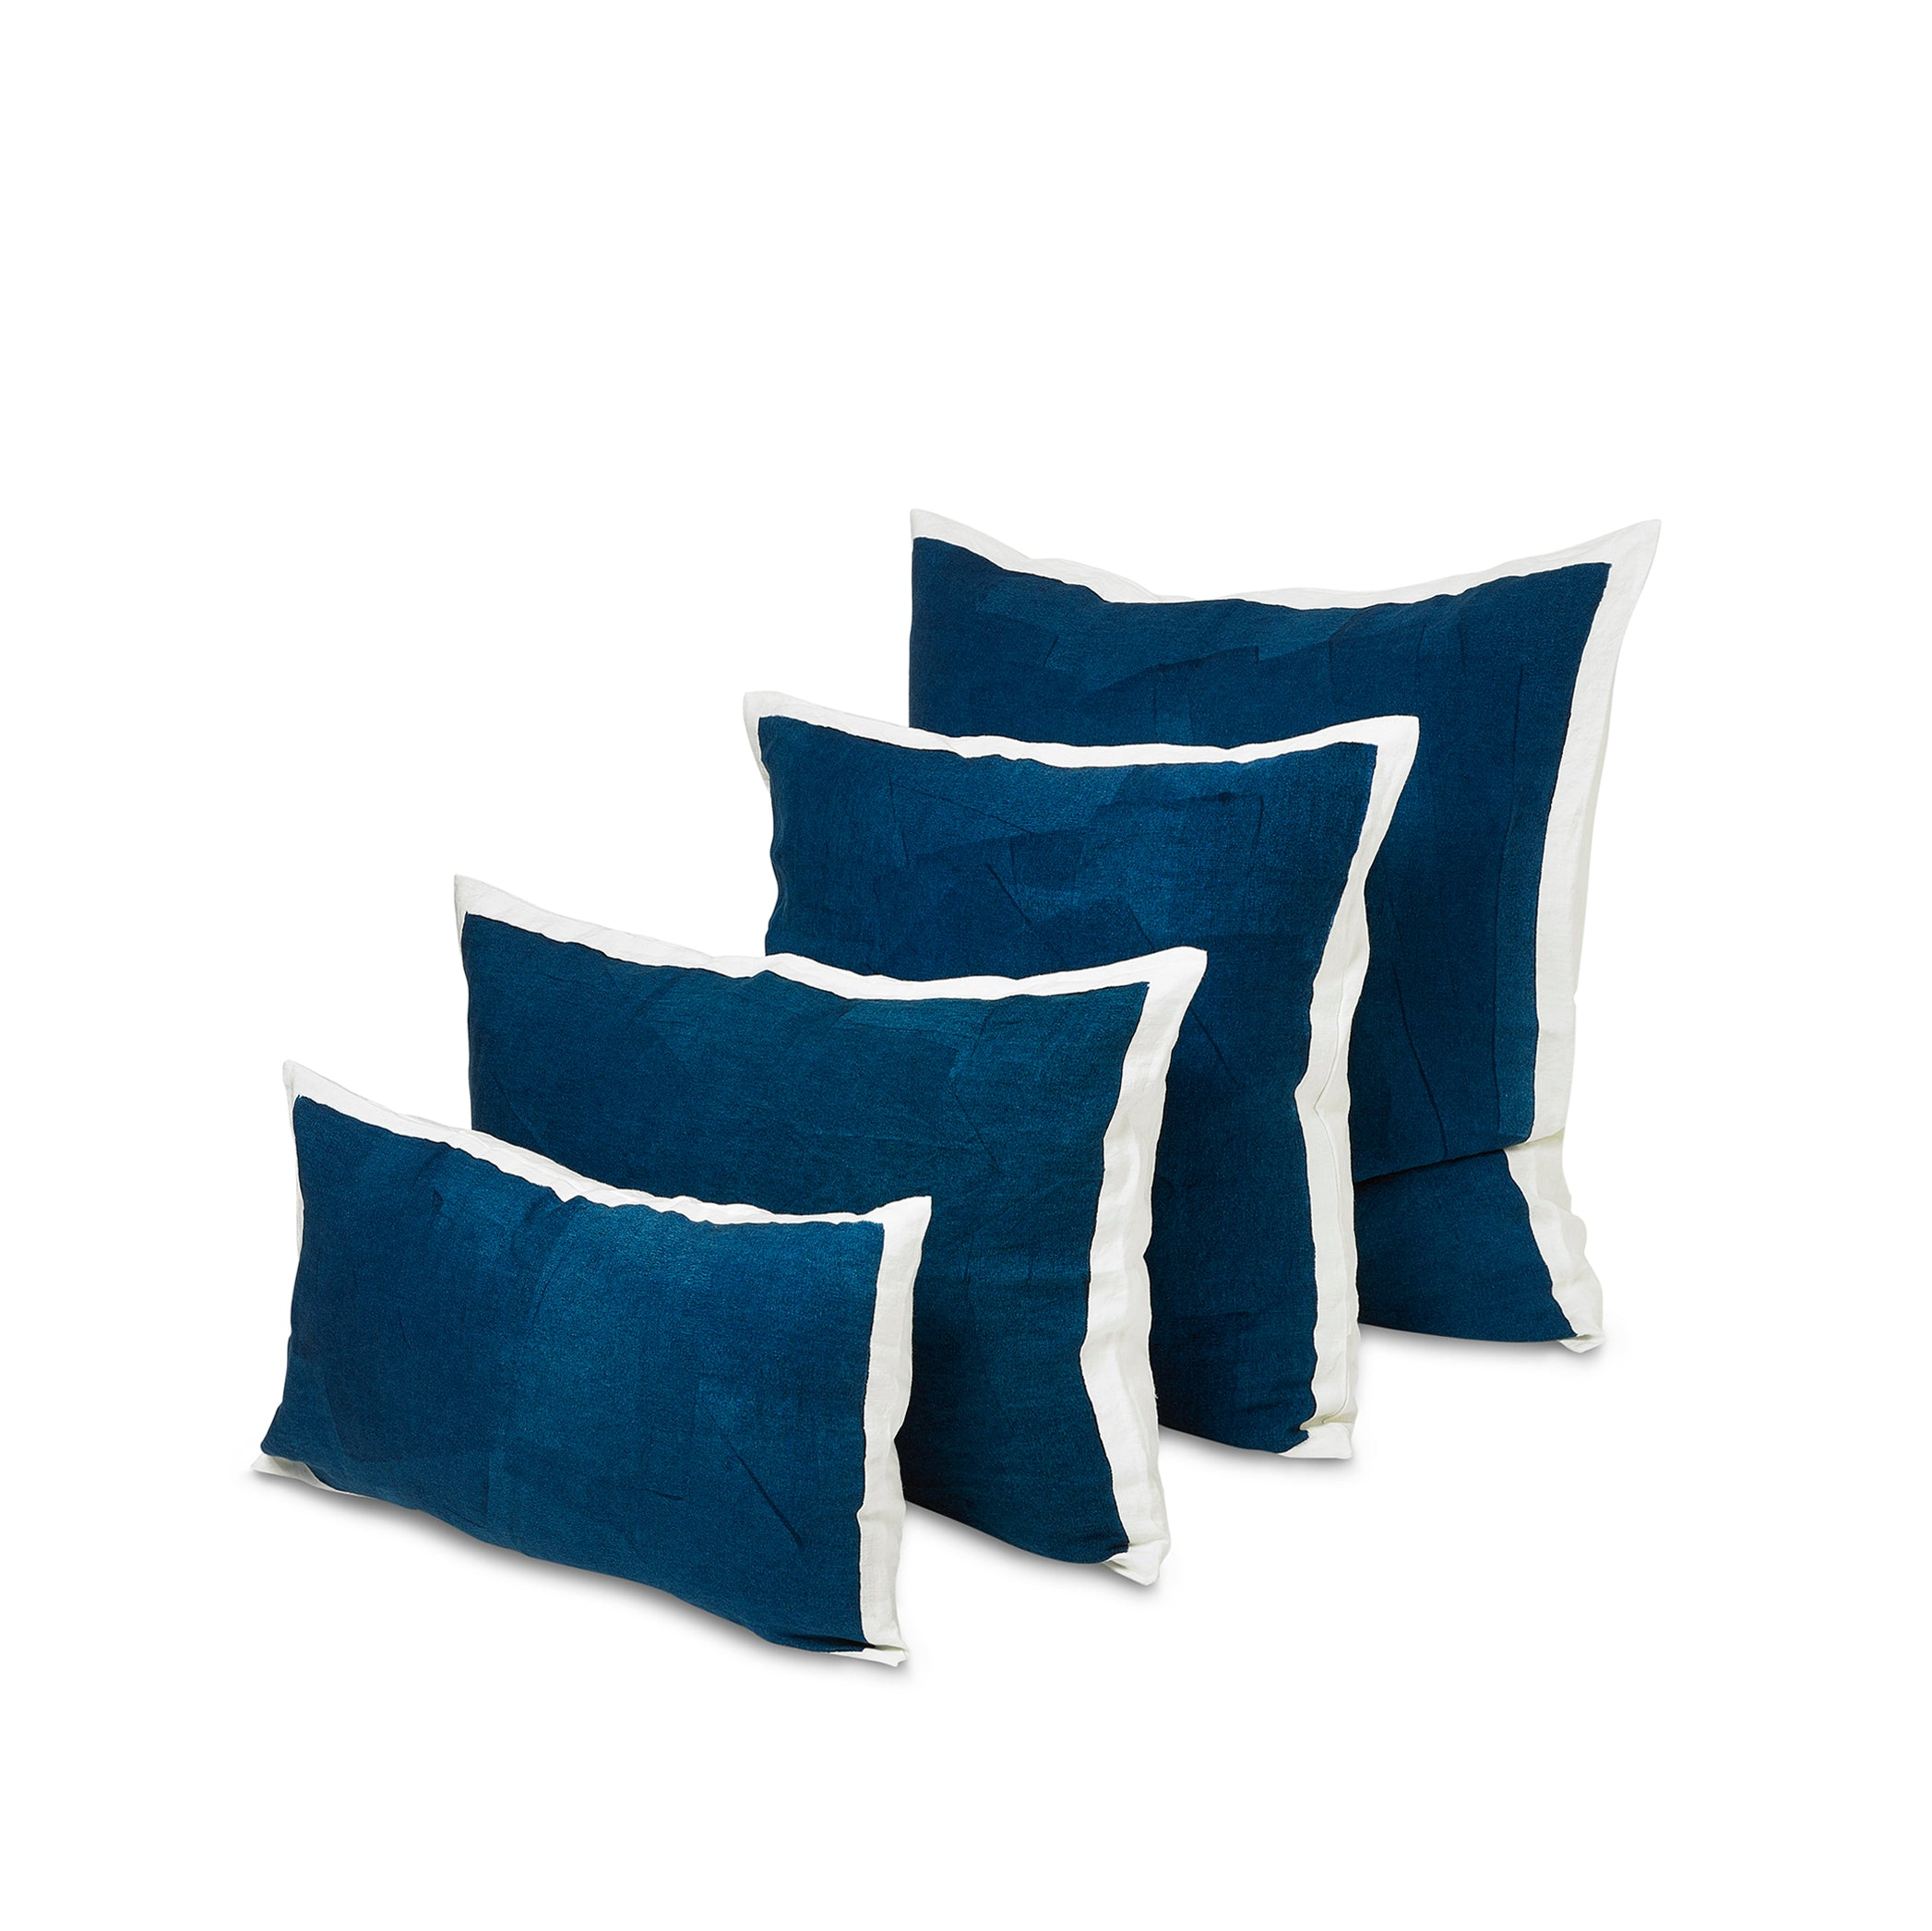 Hand Painted Linen Cushion in Midnight Blue, 50cm x 30cm